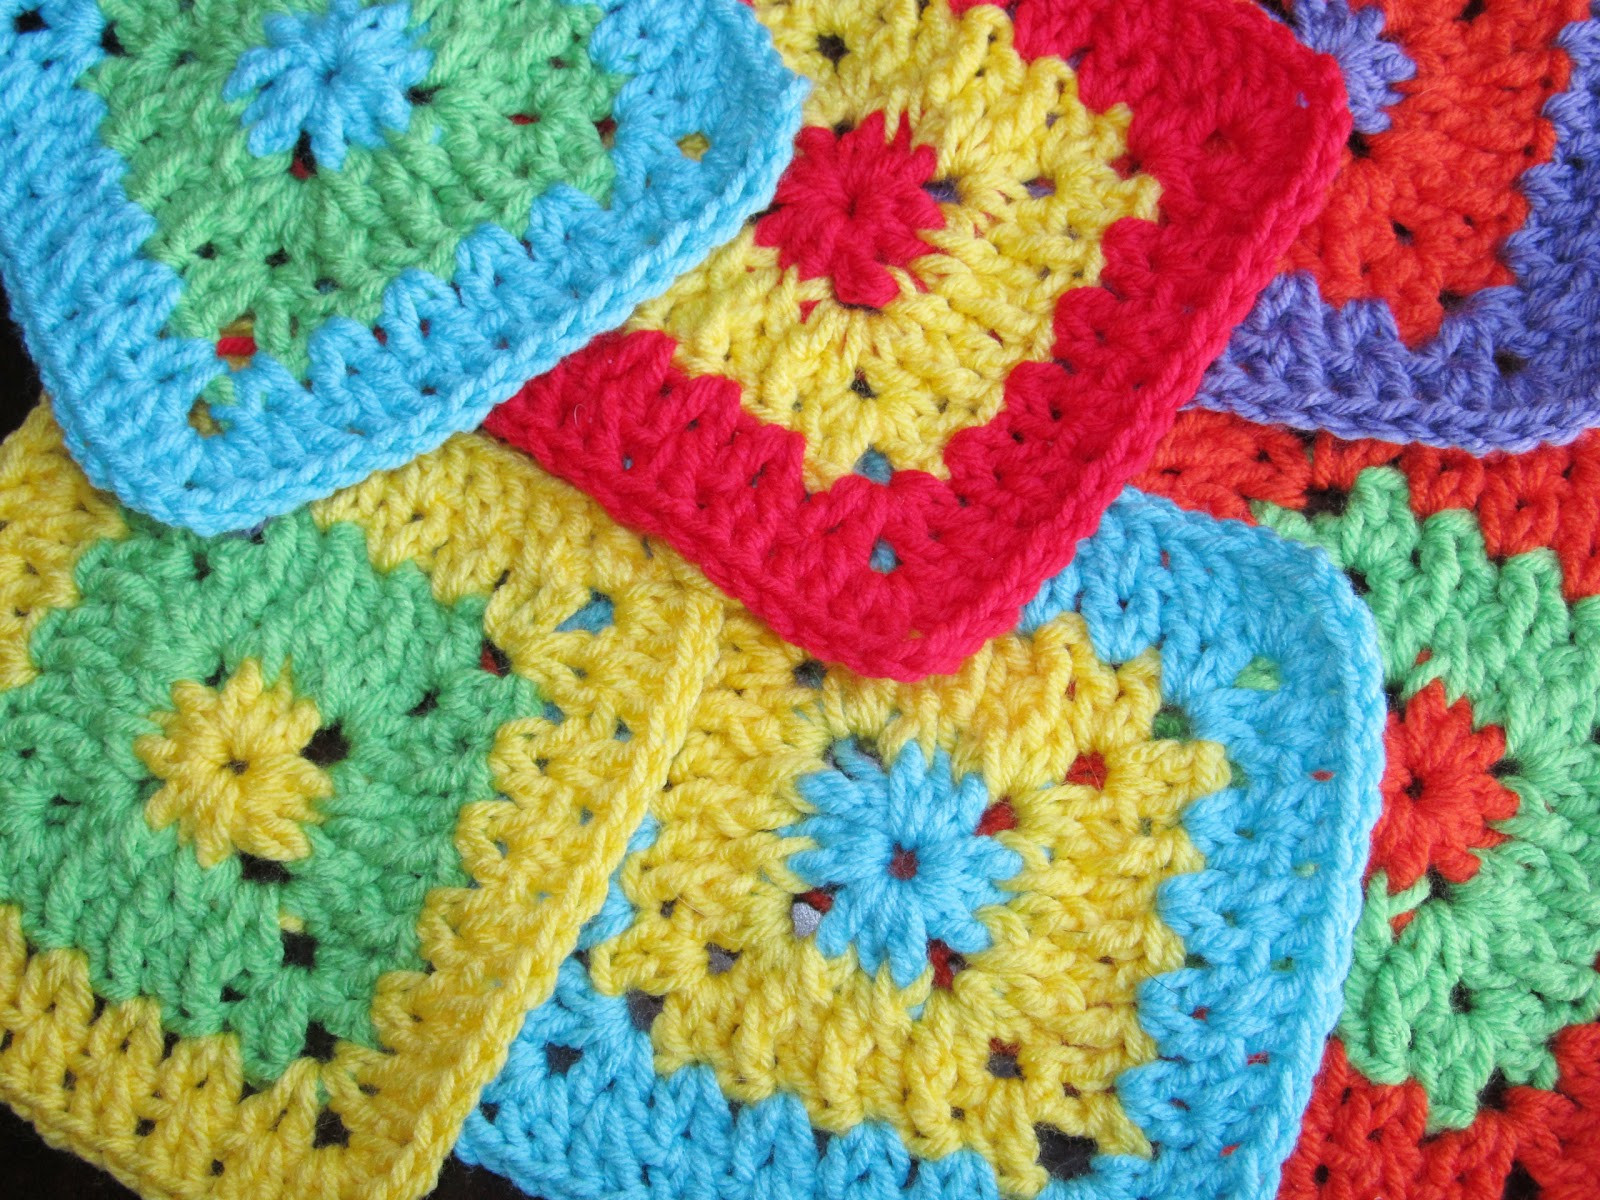 Elegant Smoothfox Crochet and Knit Smoothfox Cool 2b Square Cool Crochet Patterns Of Awesome 45 Ideas Cool Crochet Patterns